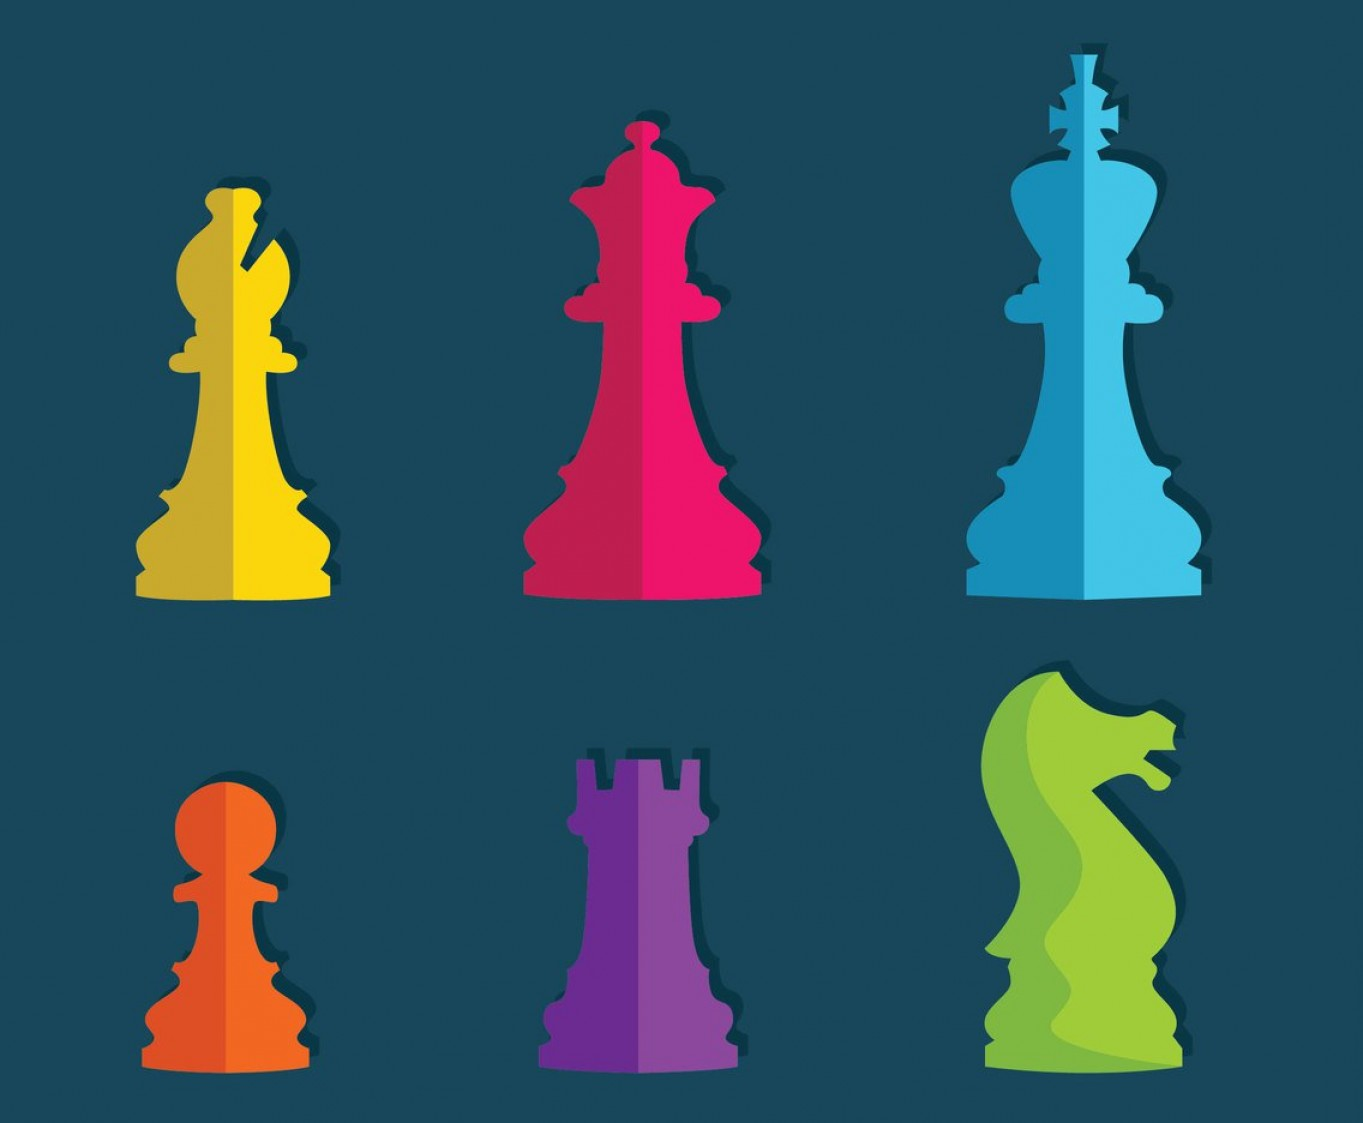 Vector Chess Board: Colorful Flat Chess Pieces Vector